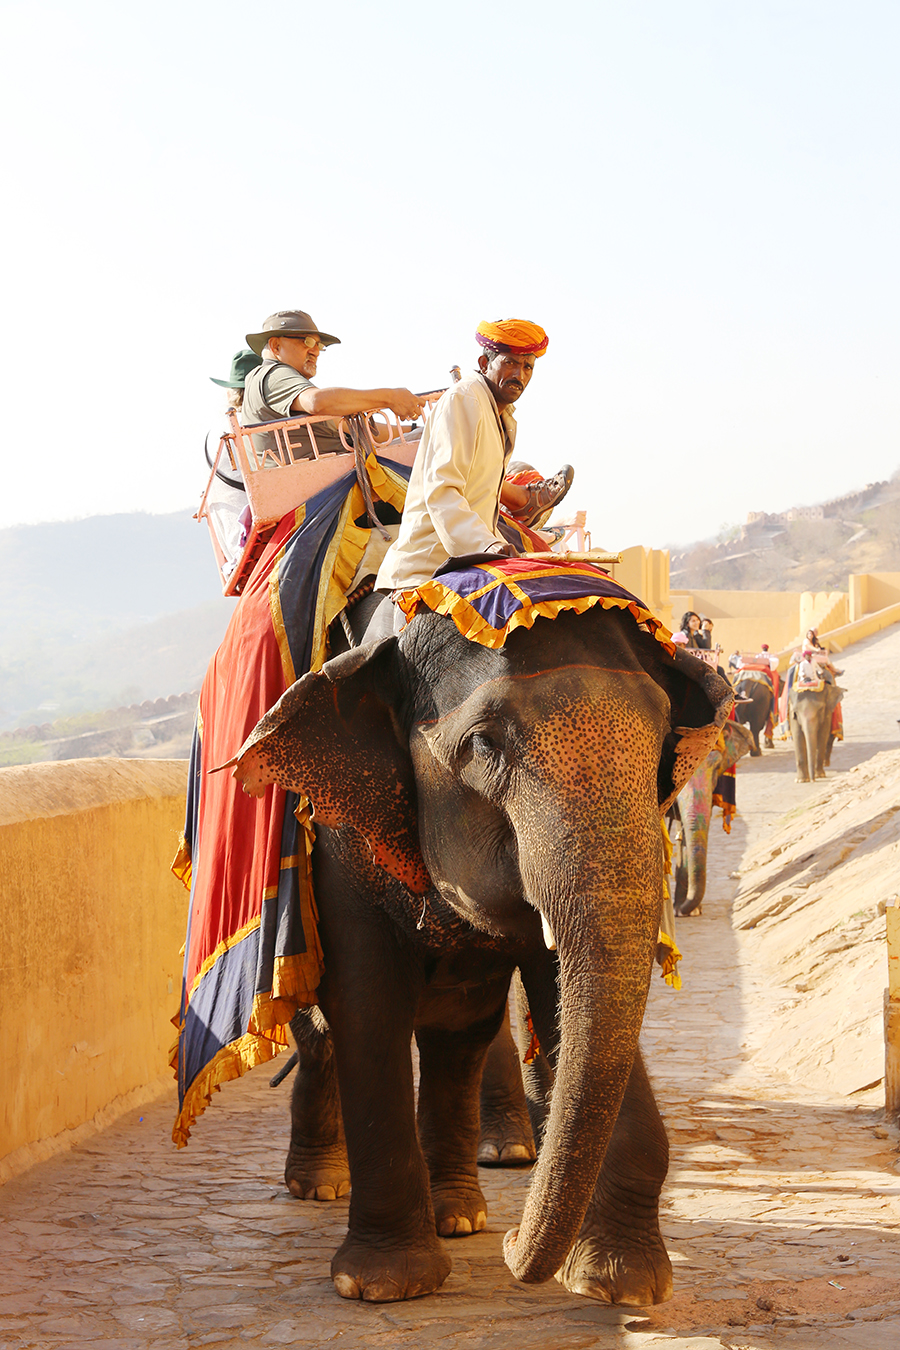 Planning a trip to Jaipur, India? You can't miss Amber Fort (aka Amer Fort), one of Rajasthan's great fortress palaces. Here's everything you need to know before you go.